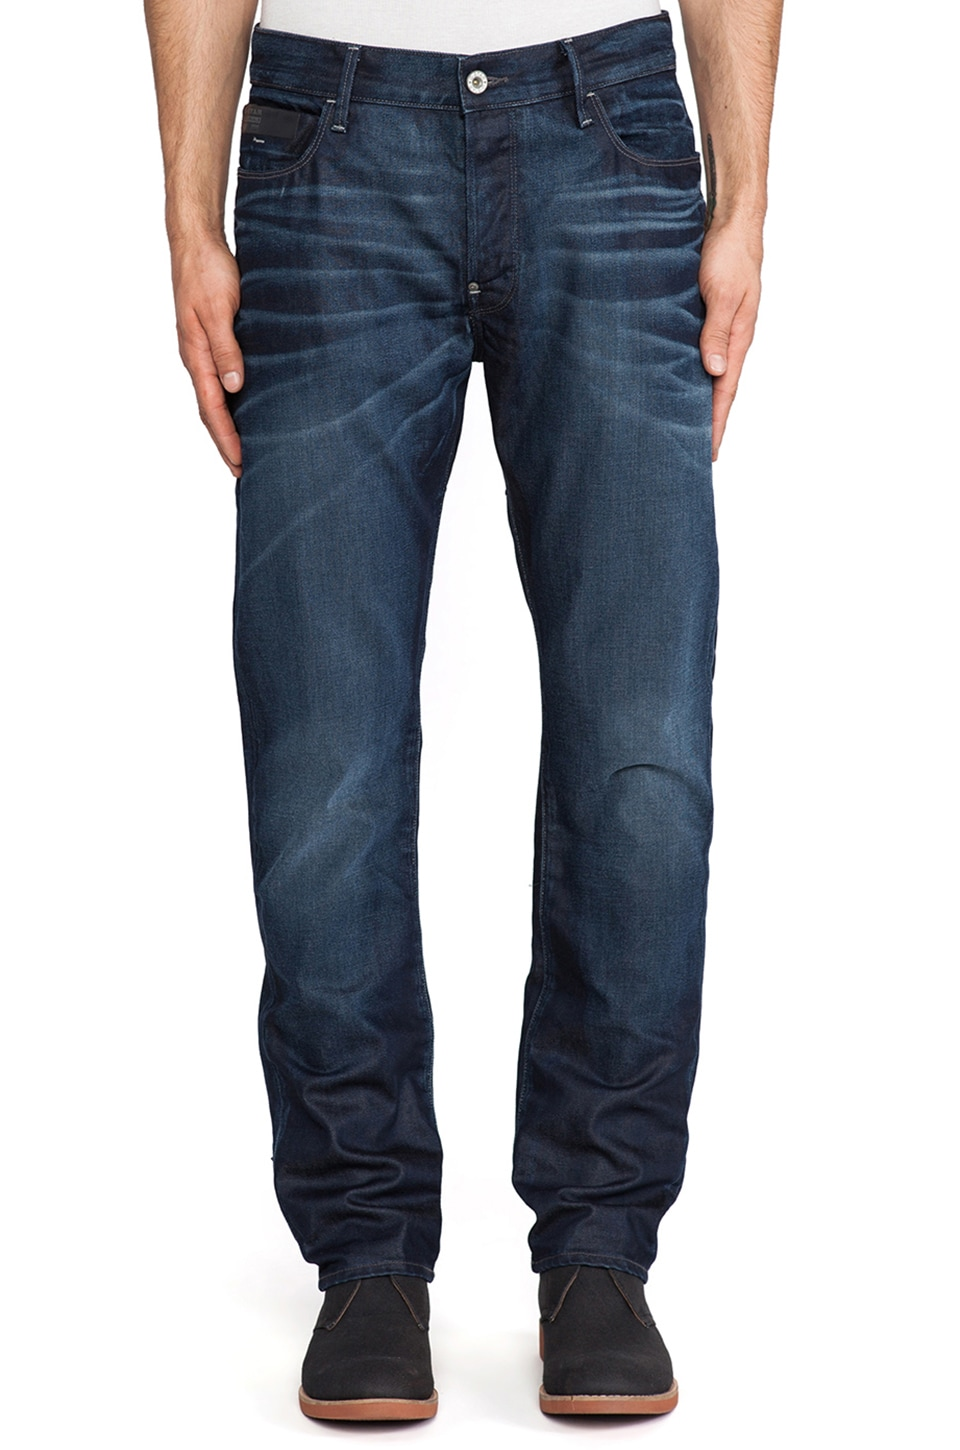 G-Star Blades Tapered Lexicon Denim in Dark Aged